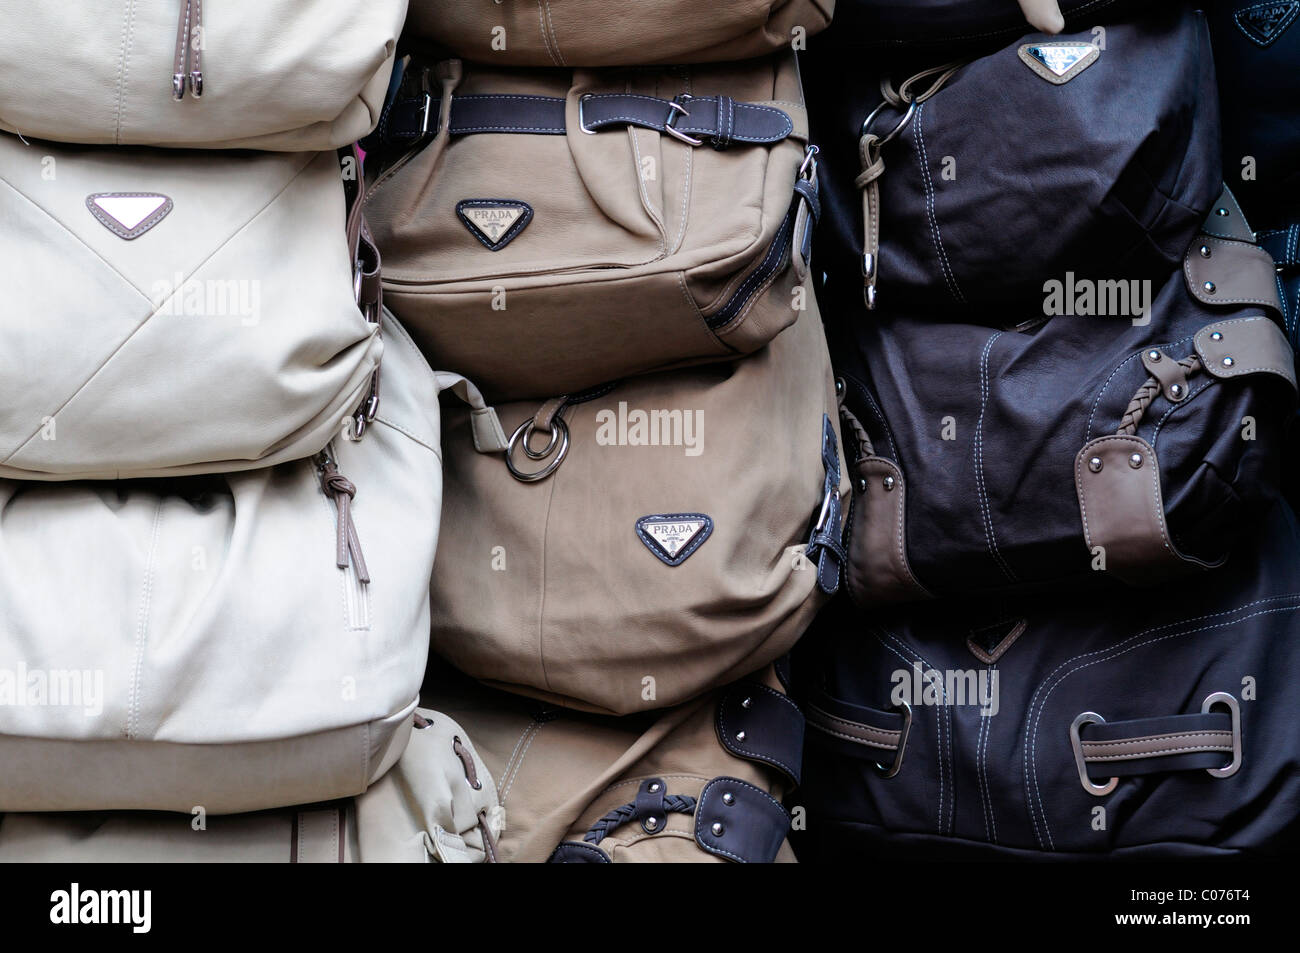 d1a64280e676 fake designer leather bags handbags pirate pirated luxury goods on sale  stall petaling street chinatown kuala